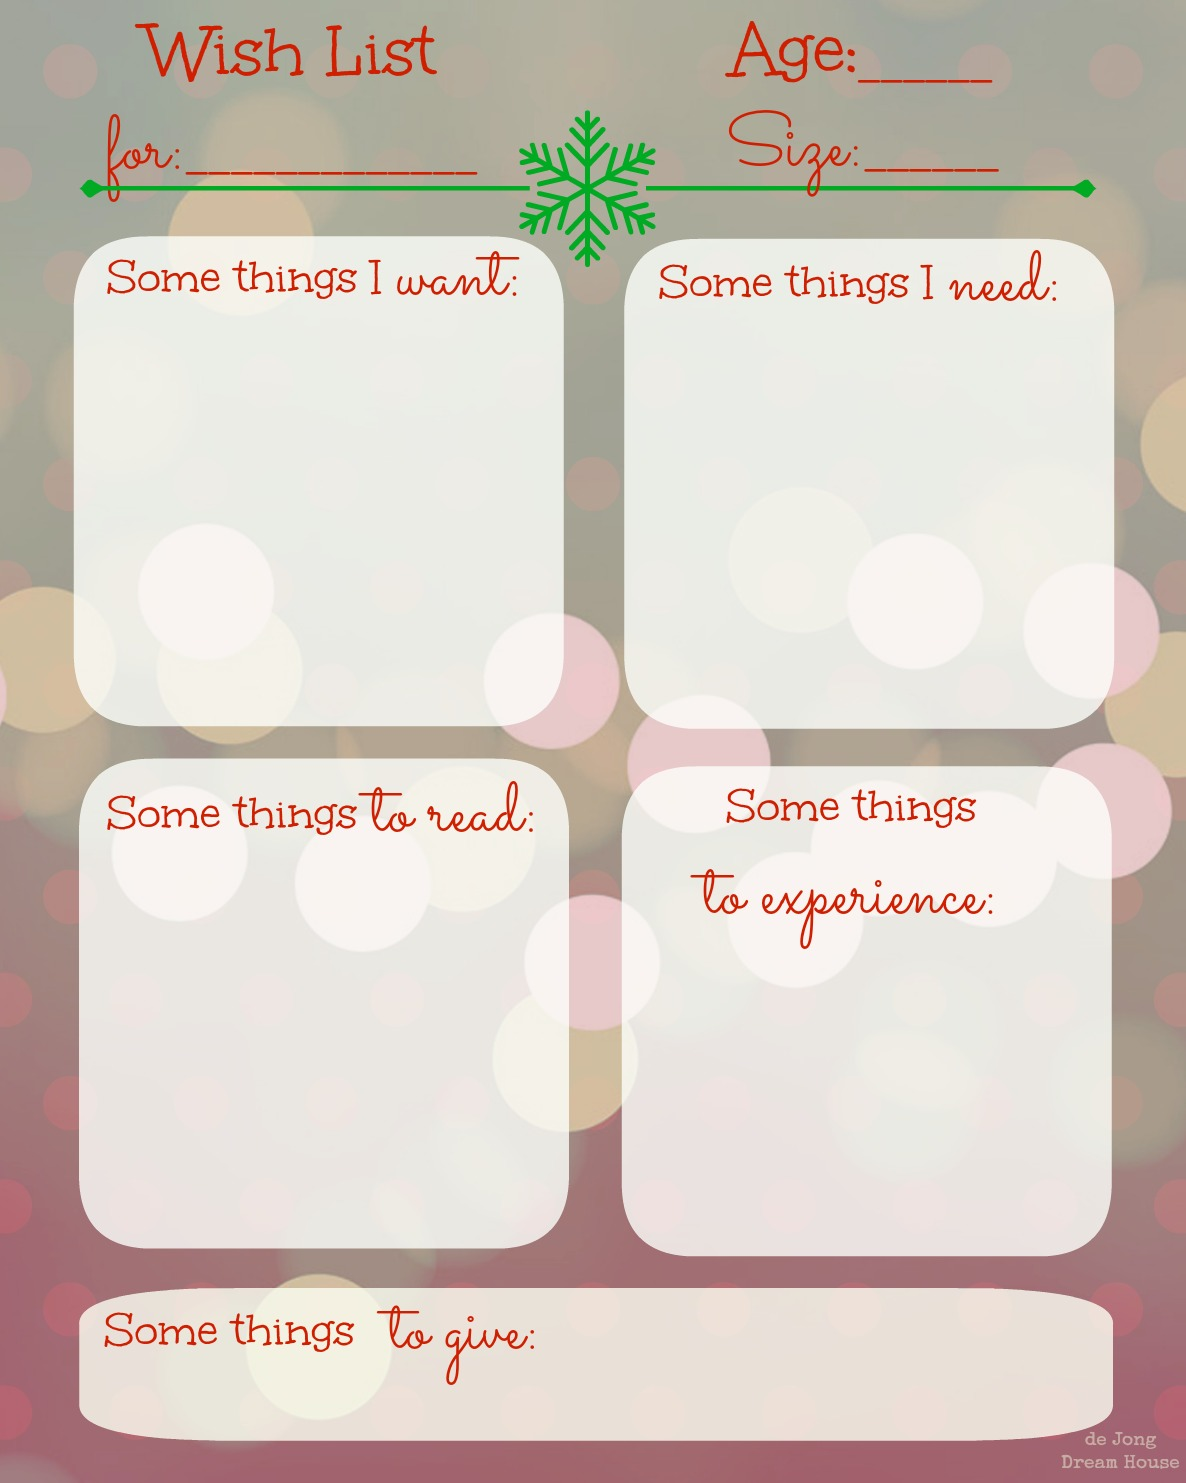 image relating to Christmas Wish List Printable named de Jong Aspiration Room: The December Checklist: free of charge Xmas